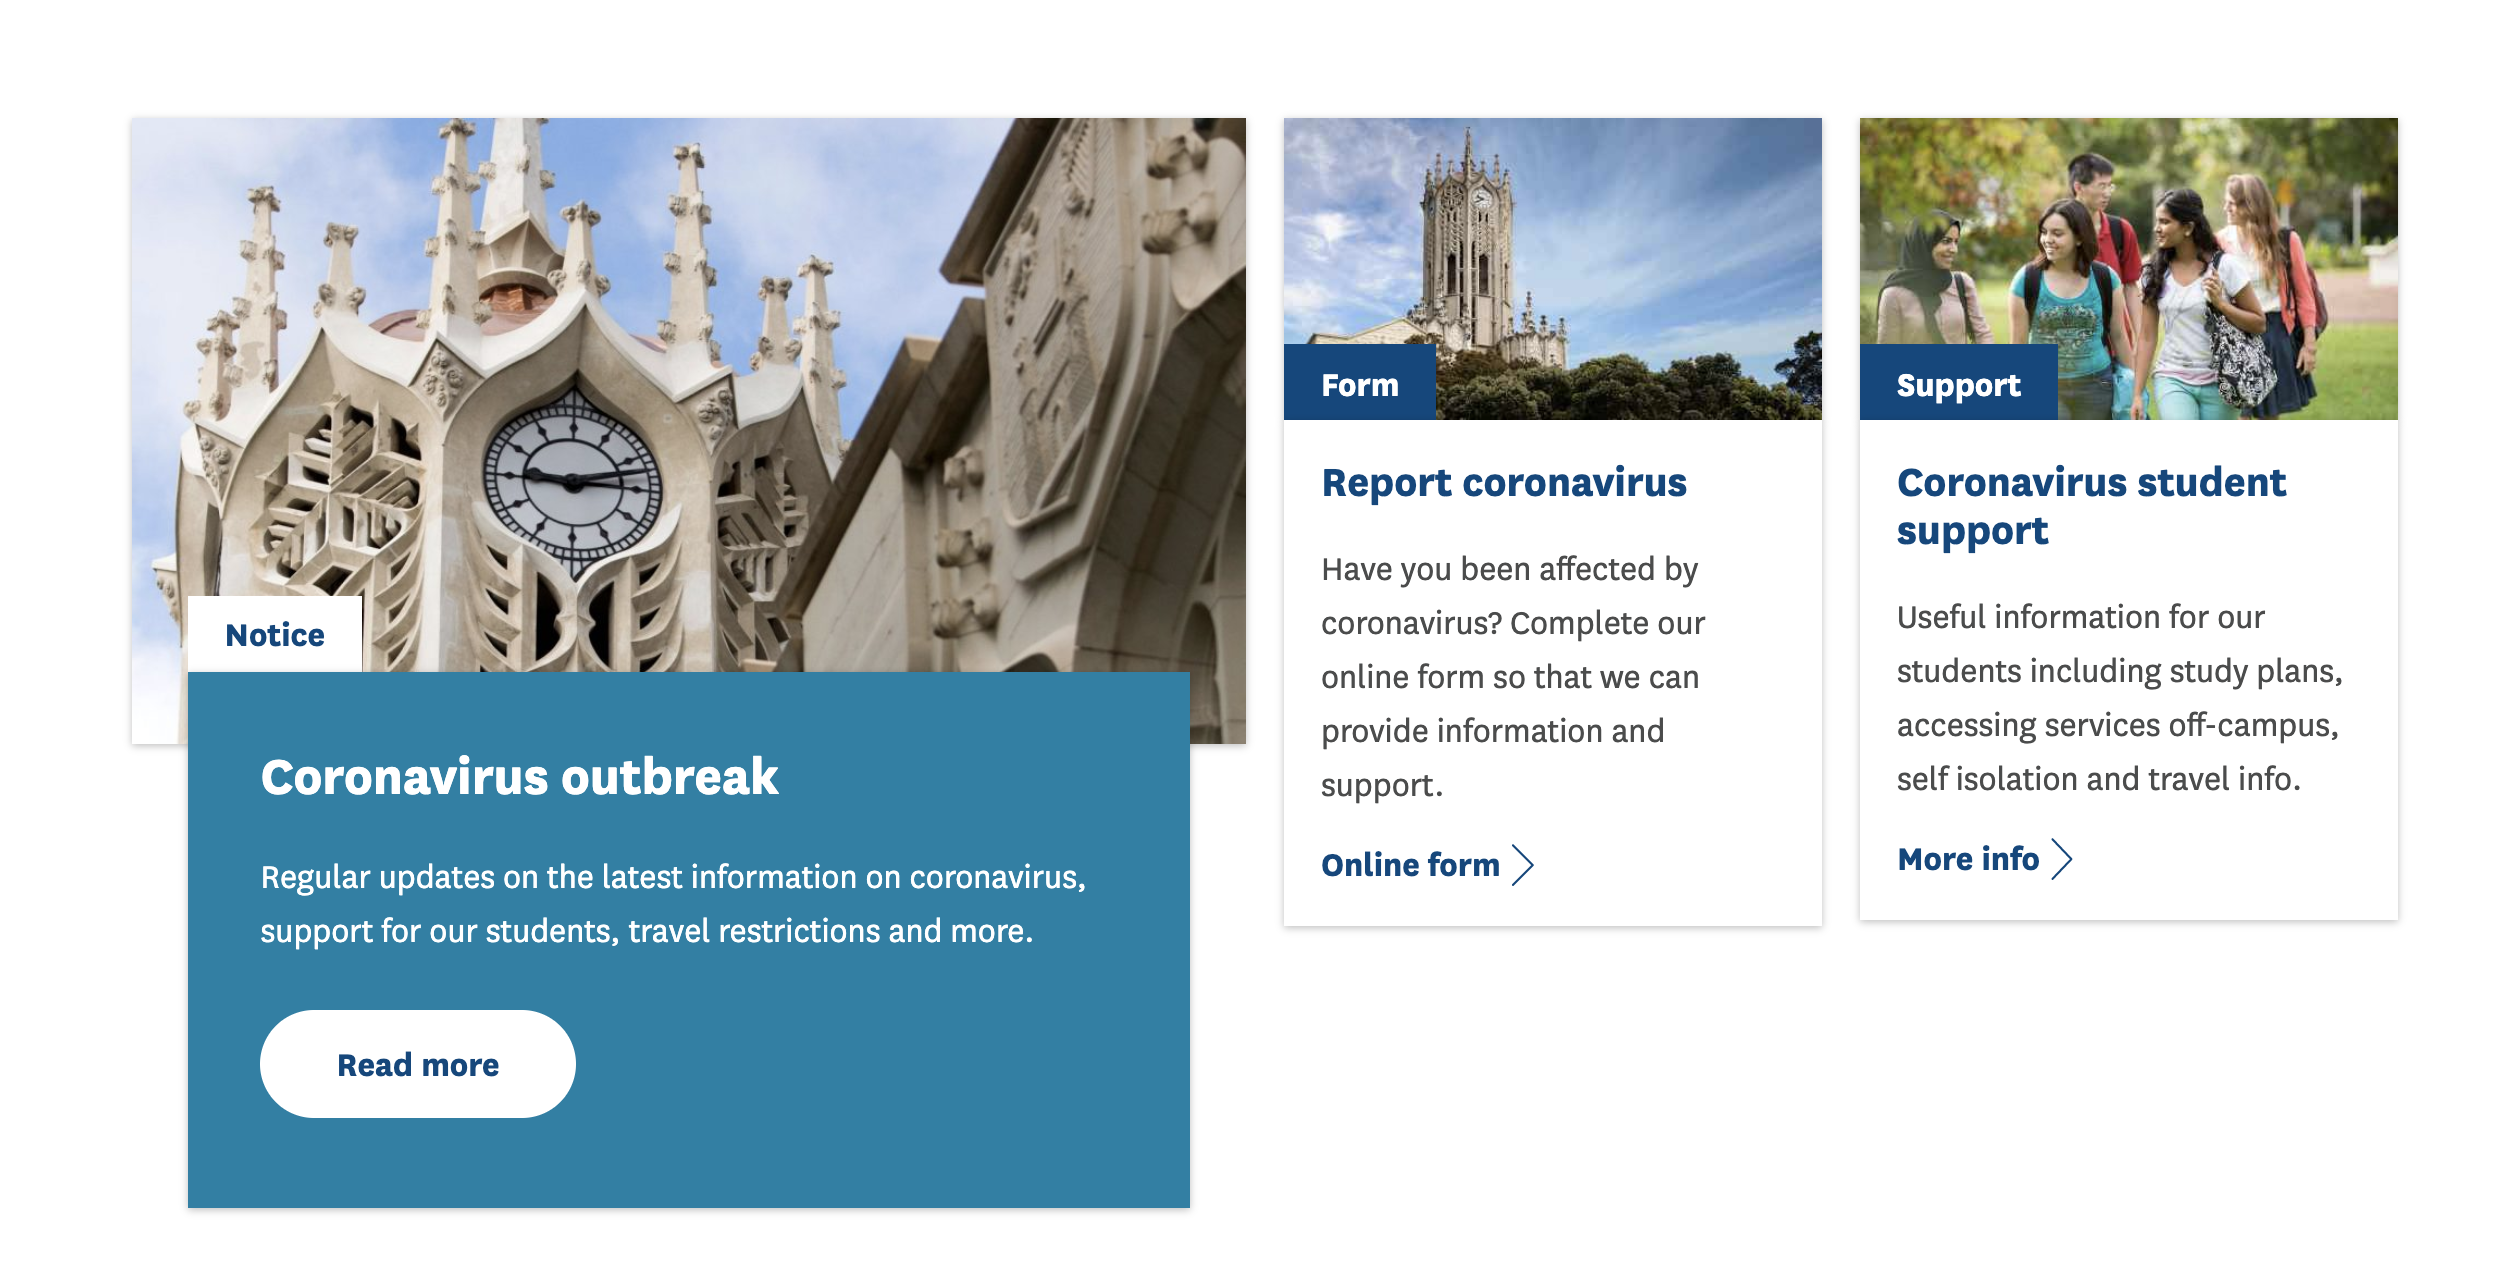 A screenshot from the University of Auckland website showing the three calls to action they have for their coronavirus content.